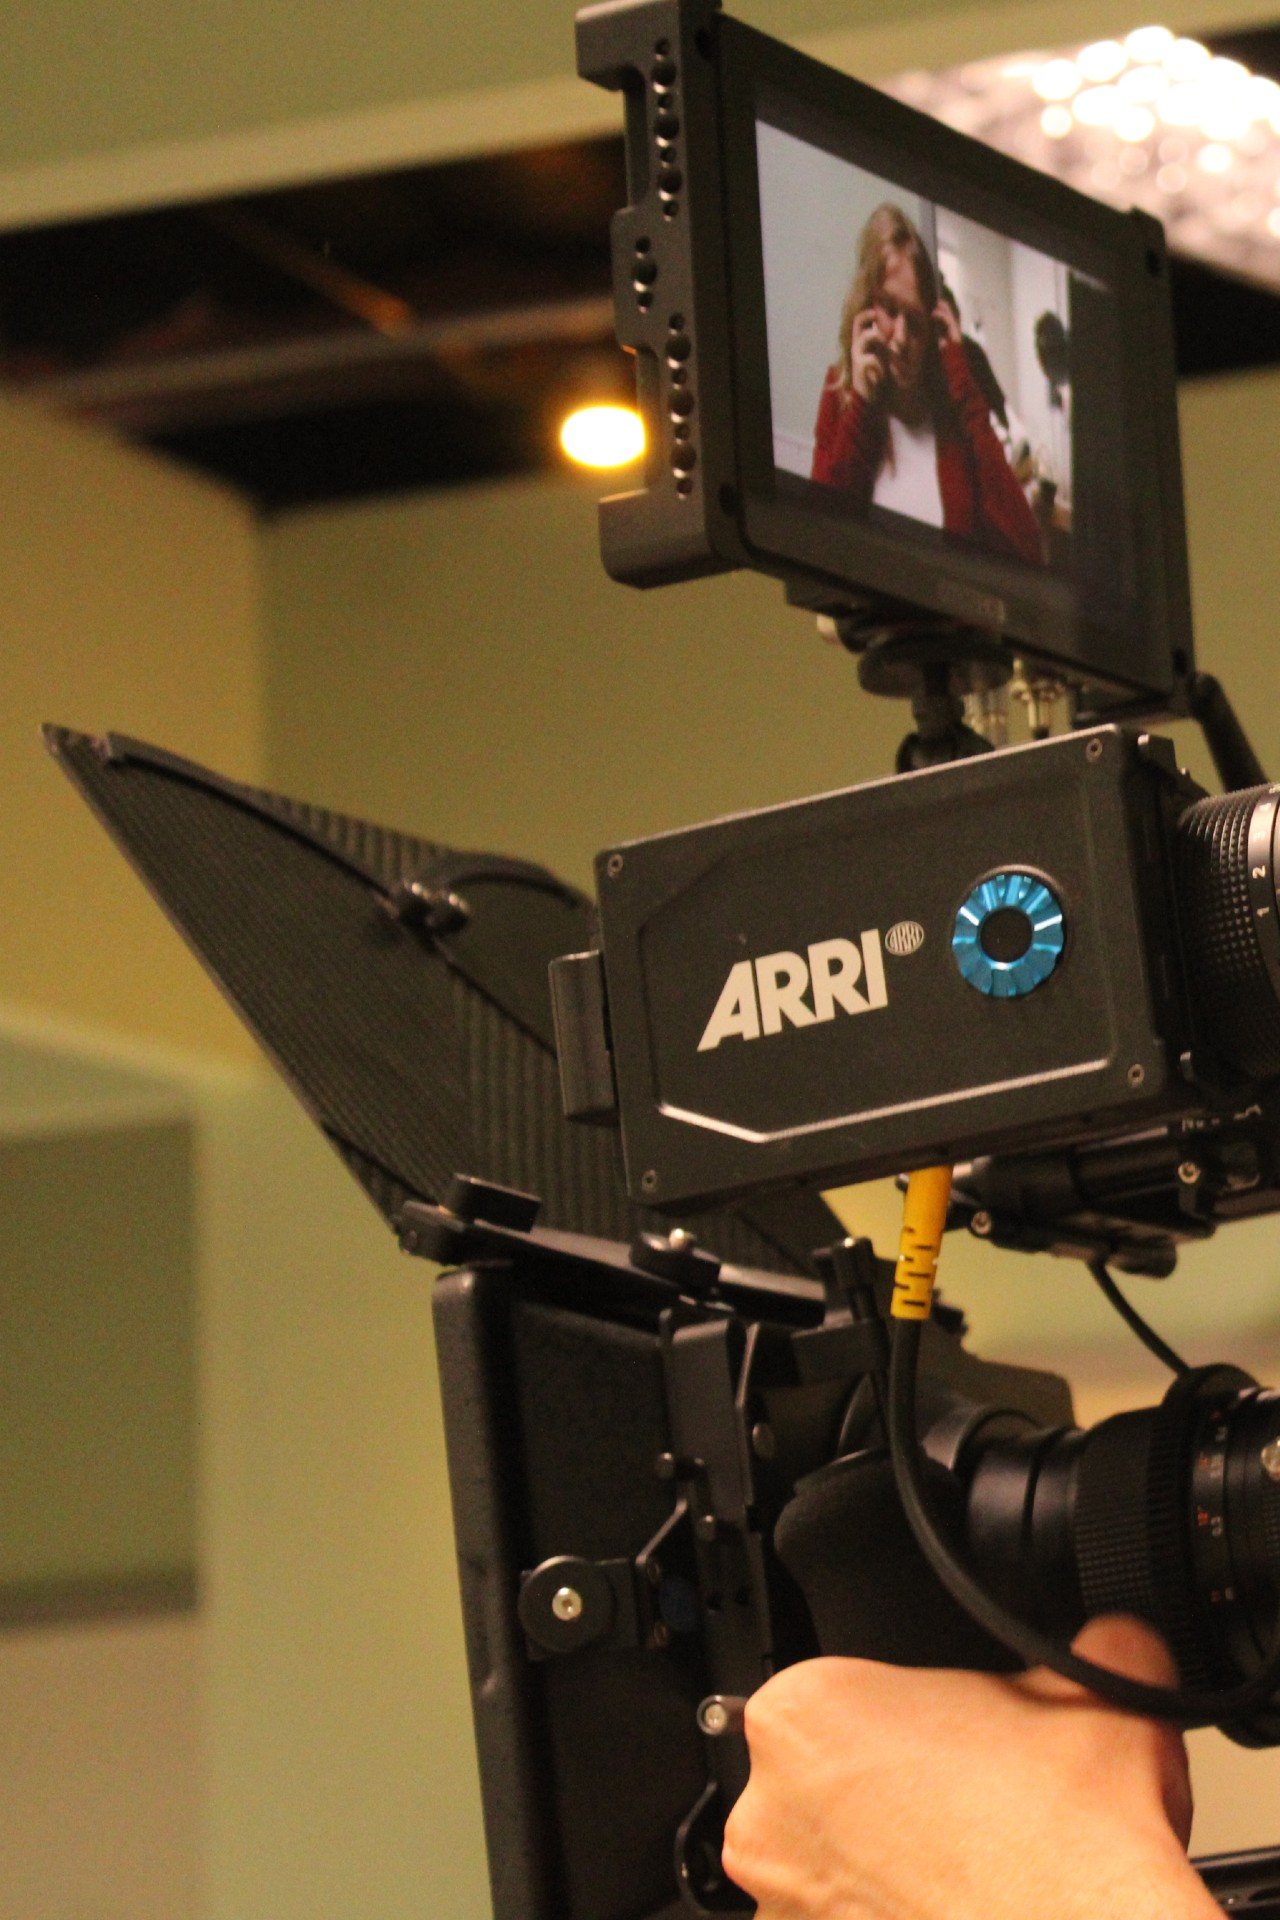 Behind the scenes image of the Arri camera Snakebyte Productions used on a feature film.